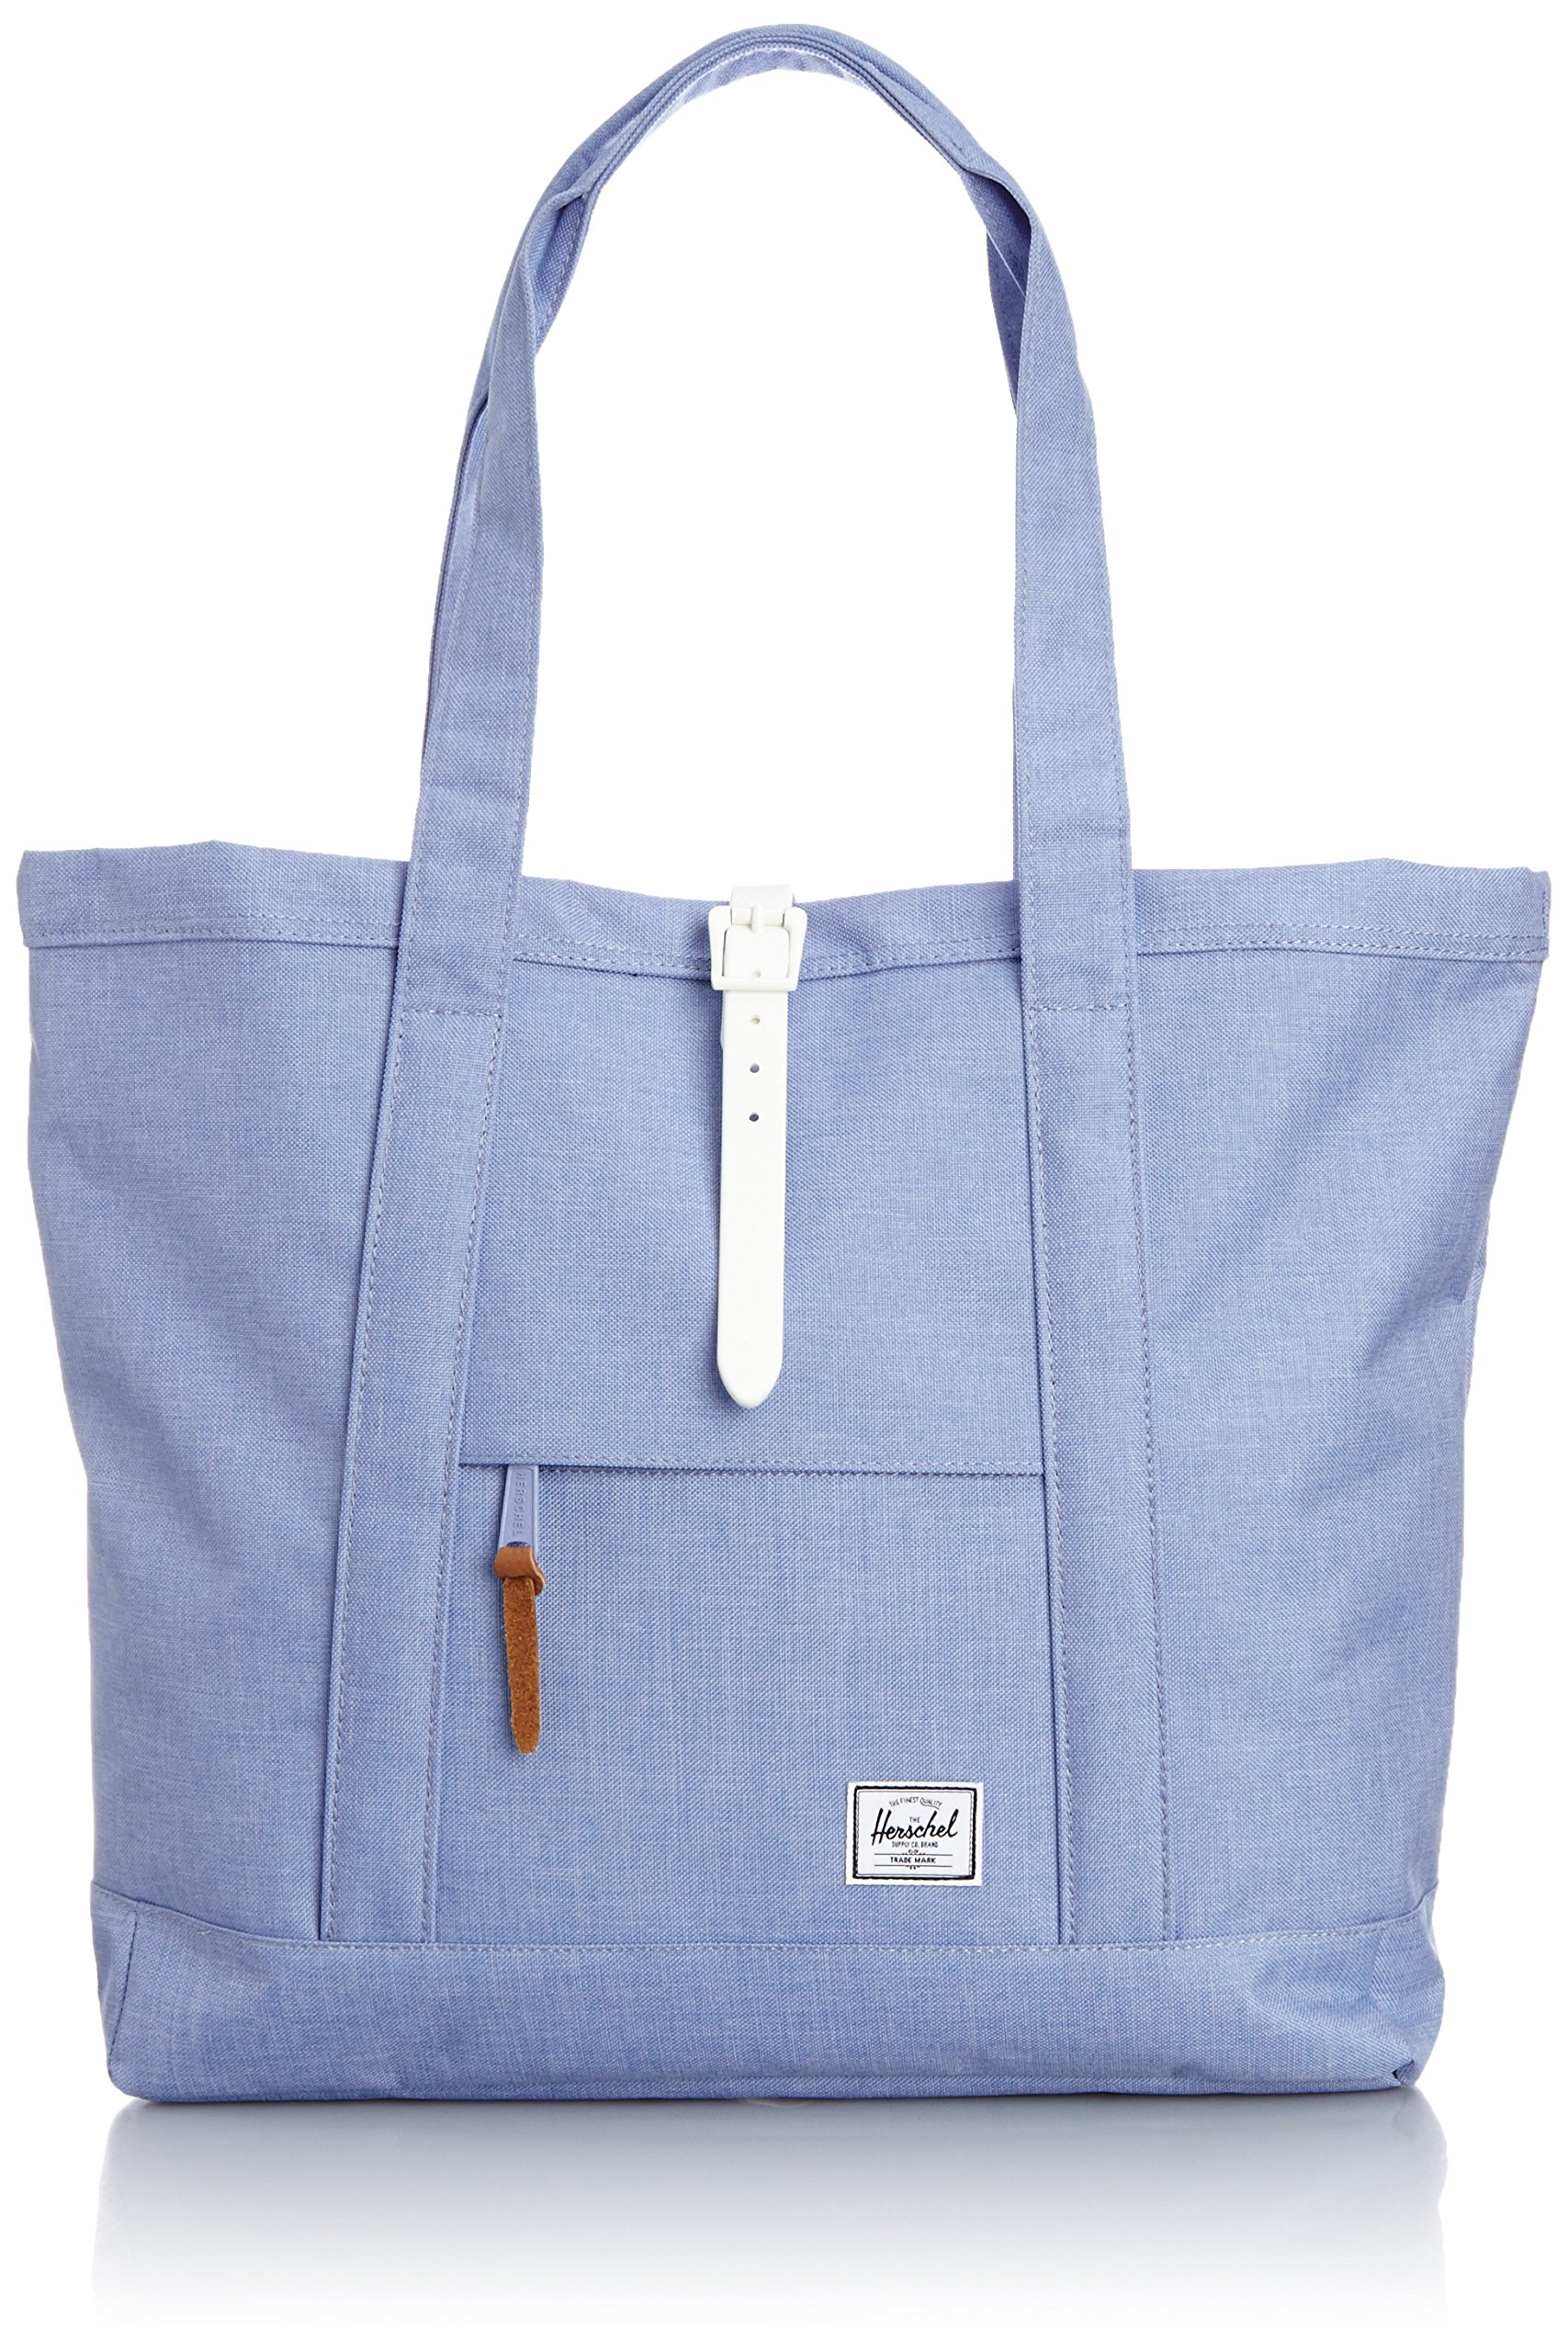 Herschel Supply Co. Market X-Large Travel Tote, Chambray, One Size by Herschel Supply Co. (Image #2)